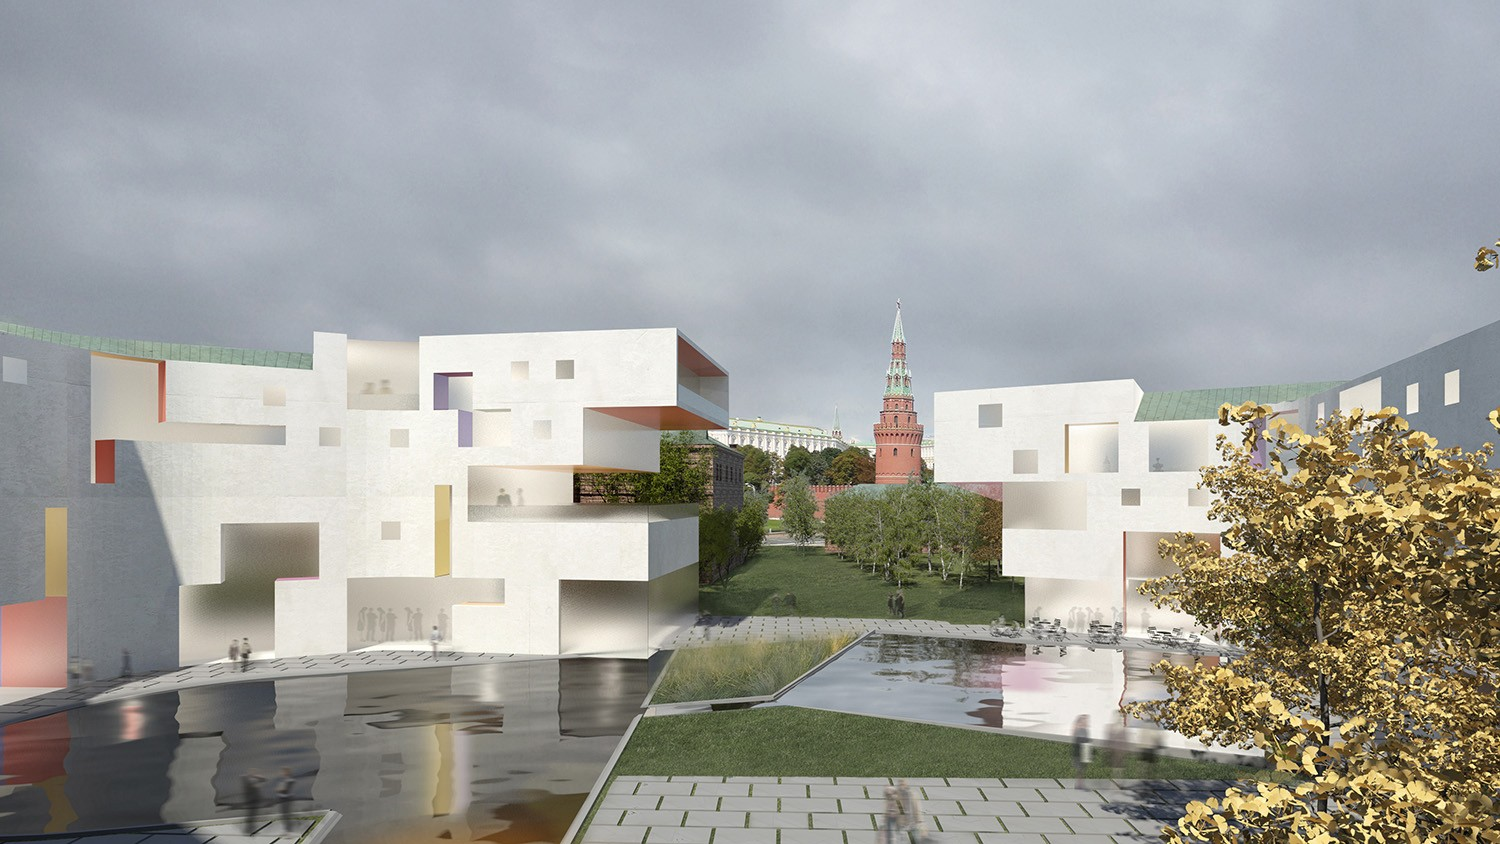 https://stevenholl.sfo2.digitaloceanspaces.com/uploads/projects/project-images/StevenHollArchitects_MGI_SHA-Moscow-main plaza_1_WH.jpg